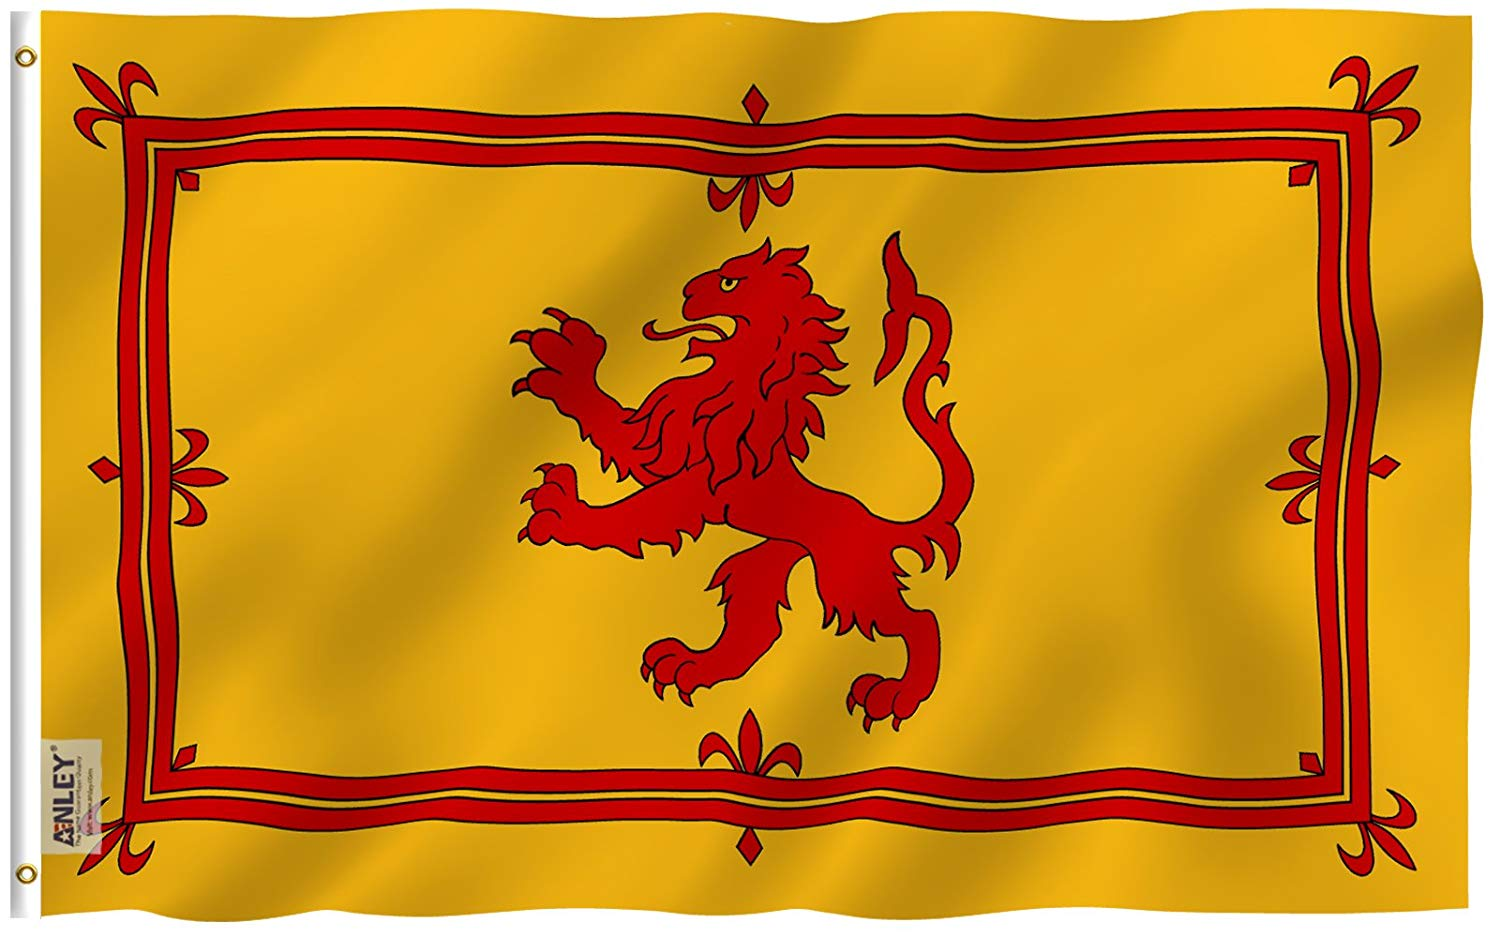 Anley |Fly Breeze| 3x5 Foot Scotland Rampant Lion Flag - Vivid Color and UV Fade Resistant - Canvas Header and Double Stitched - Scottish Rampant Lion Flags Polyester with Brass Grommets 3 X 5 Ft